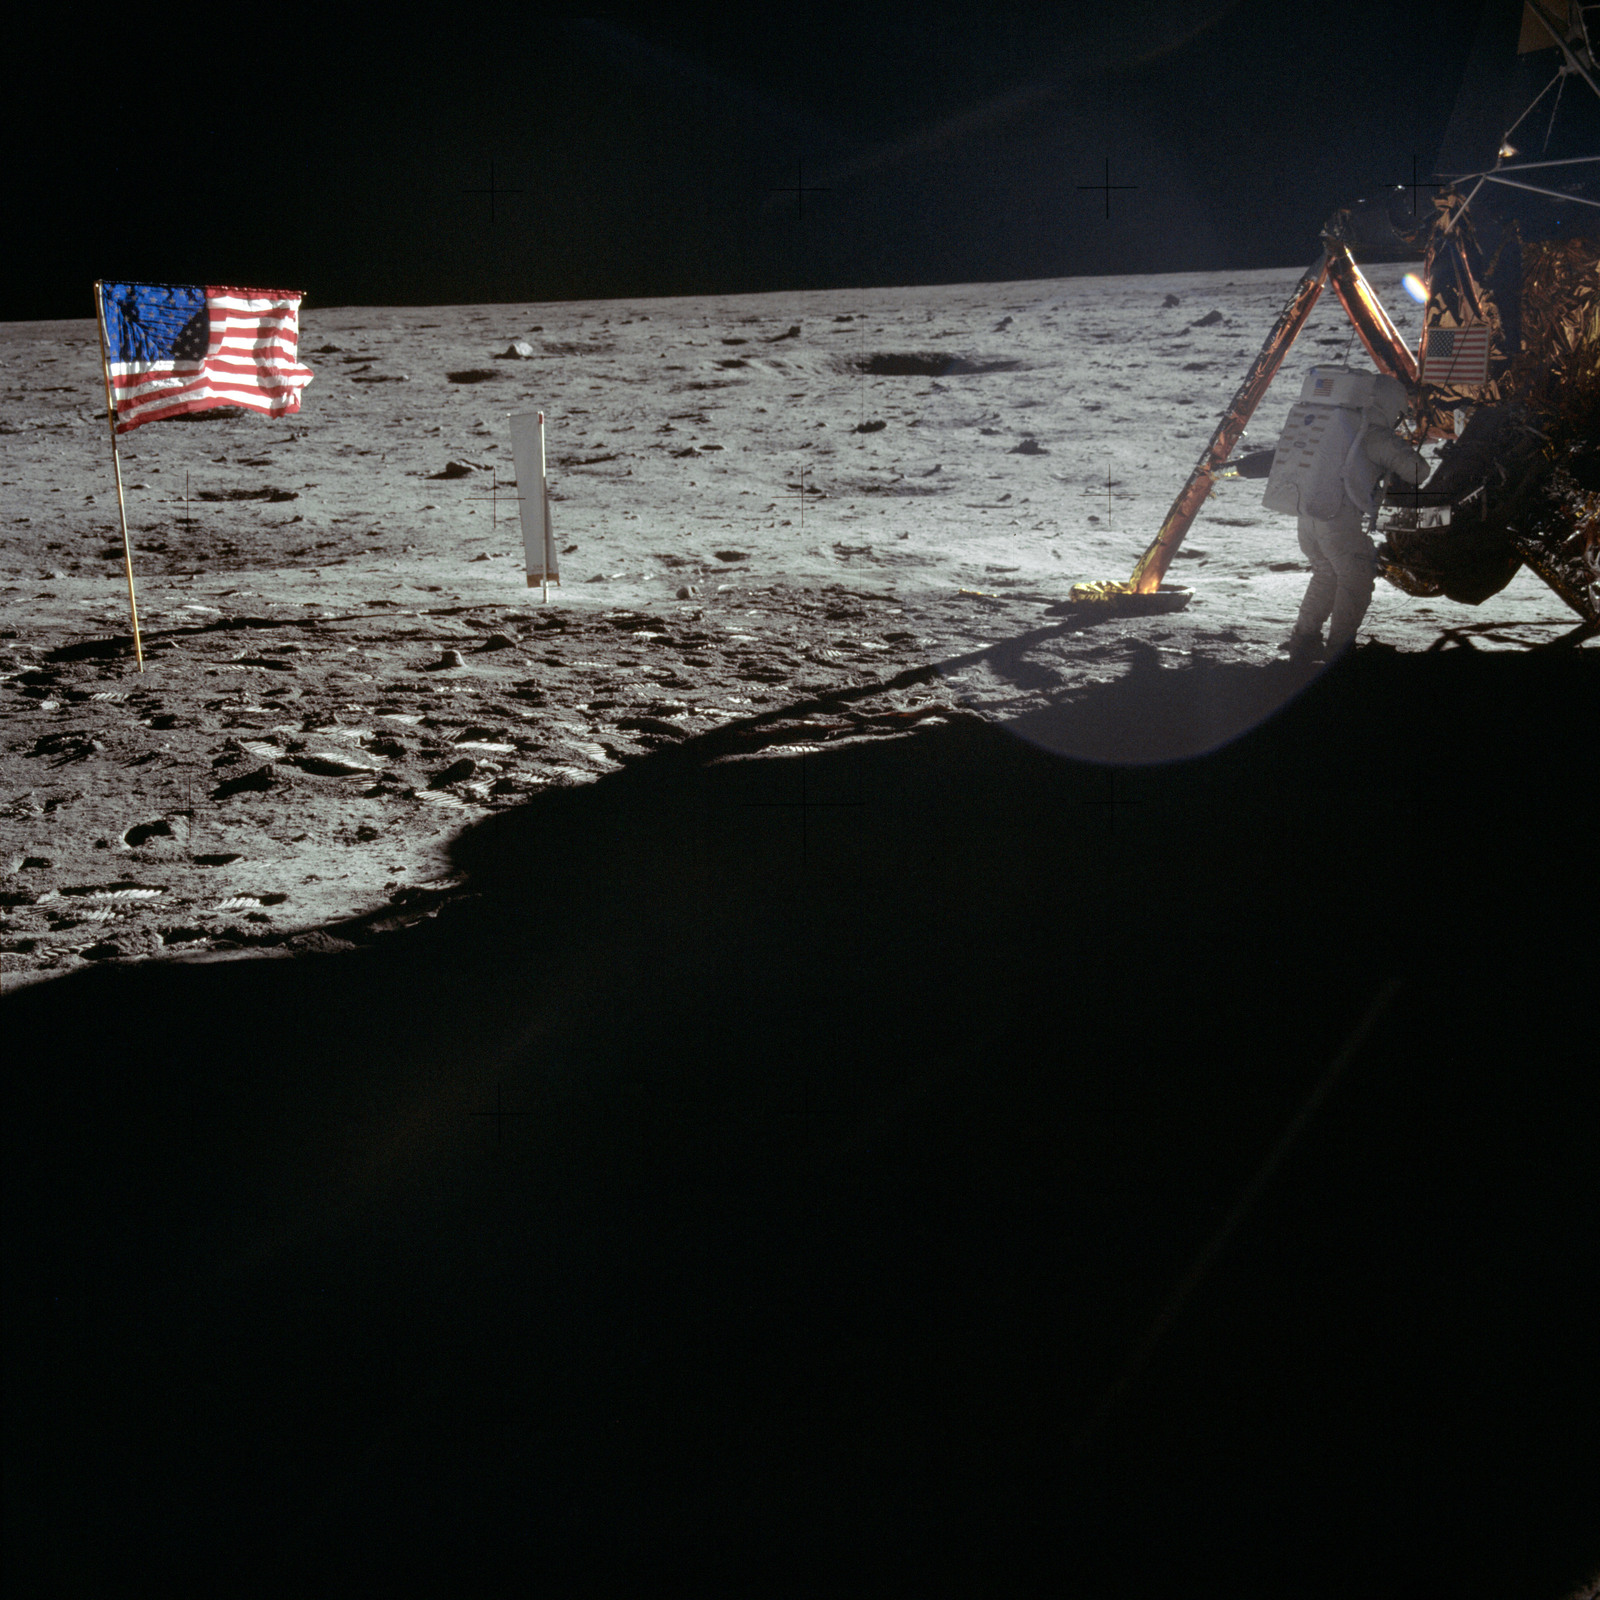 AS11-40-5886 - Apollo 11 - Apollo 11 Mission image - Astronaut Neil Armstrong works at the Lunar Module